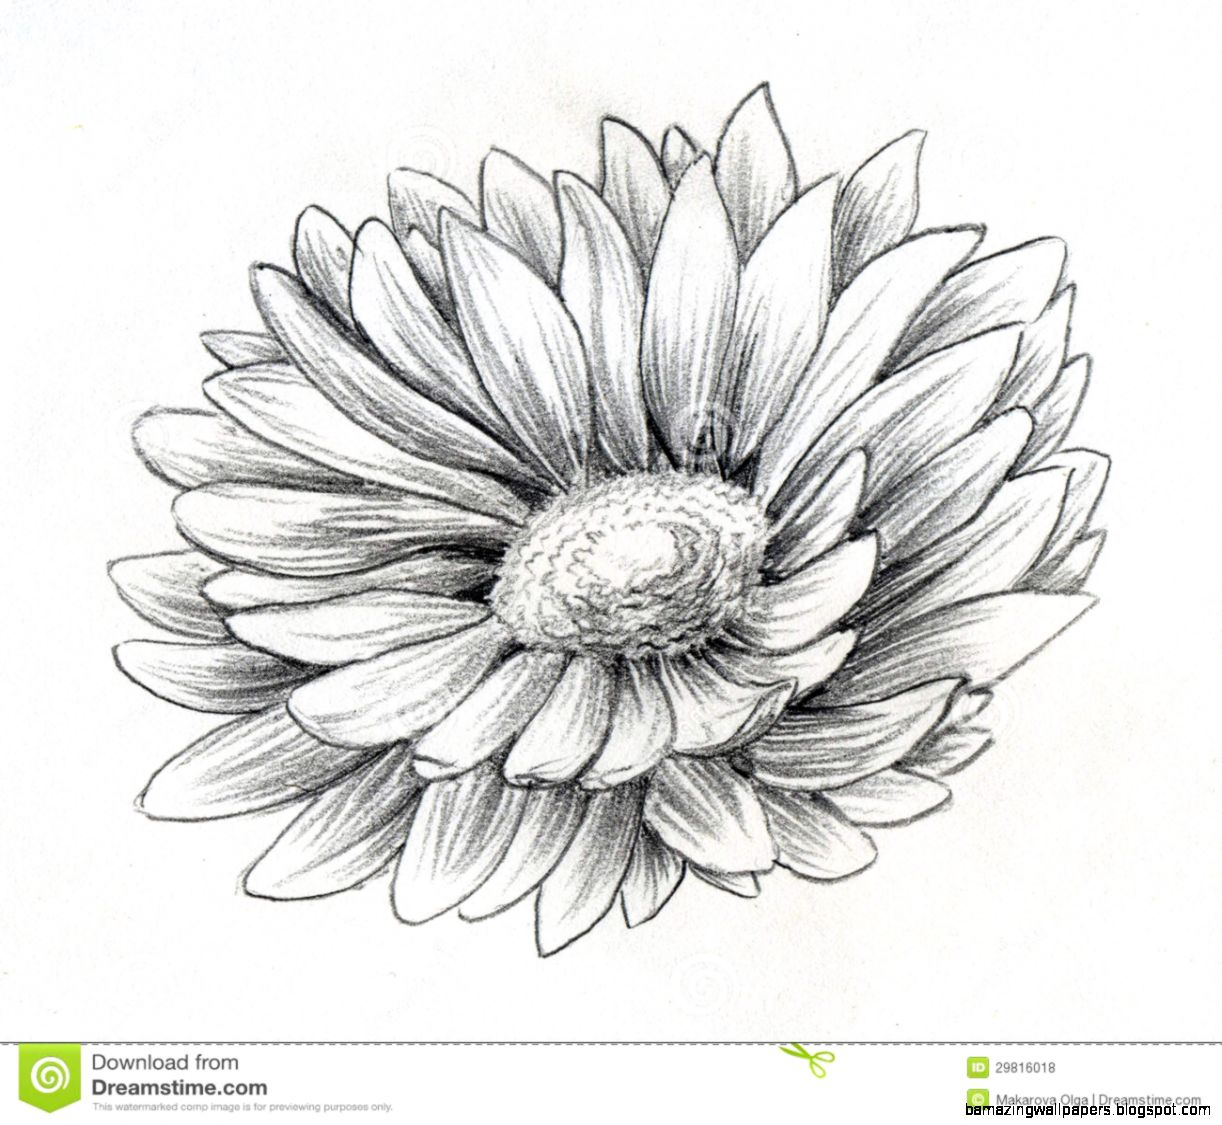 Daisy Flower Pencil Sketch Royalty Free Stock Photos   Image 29816018